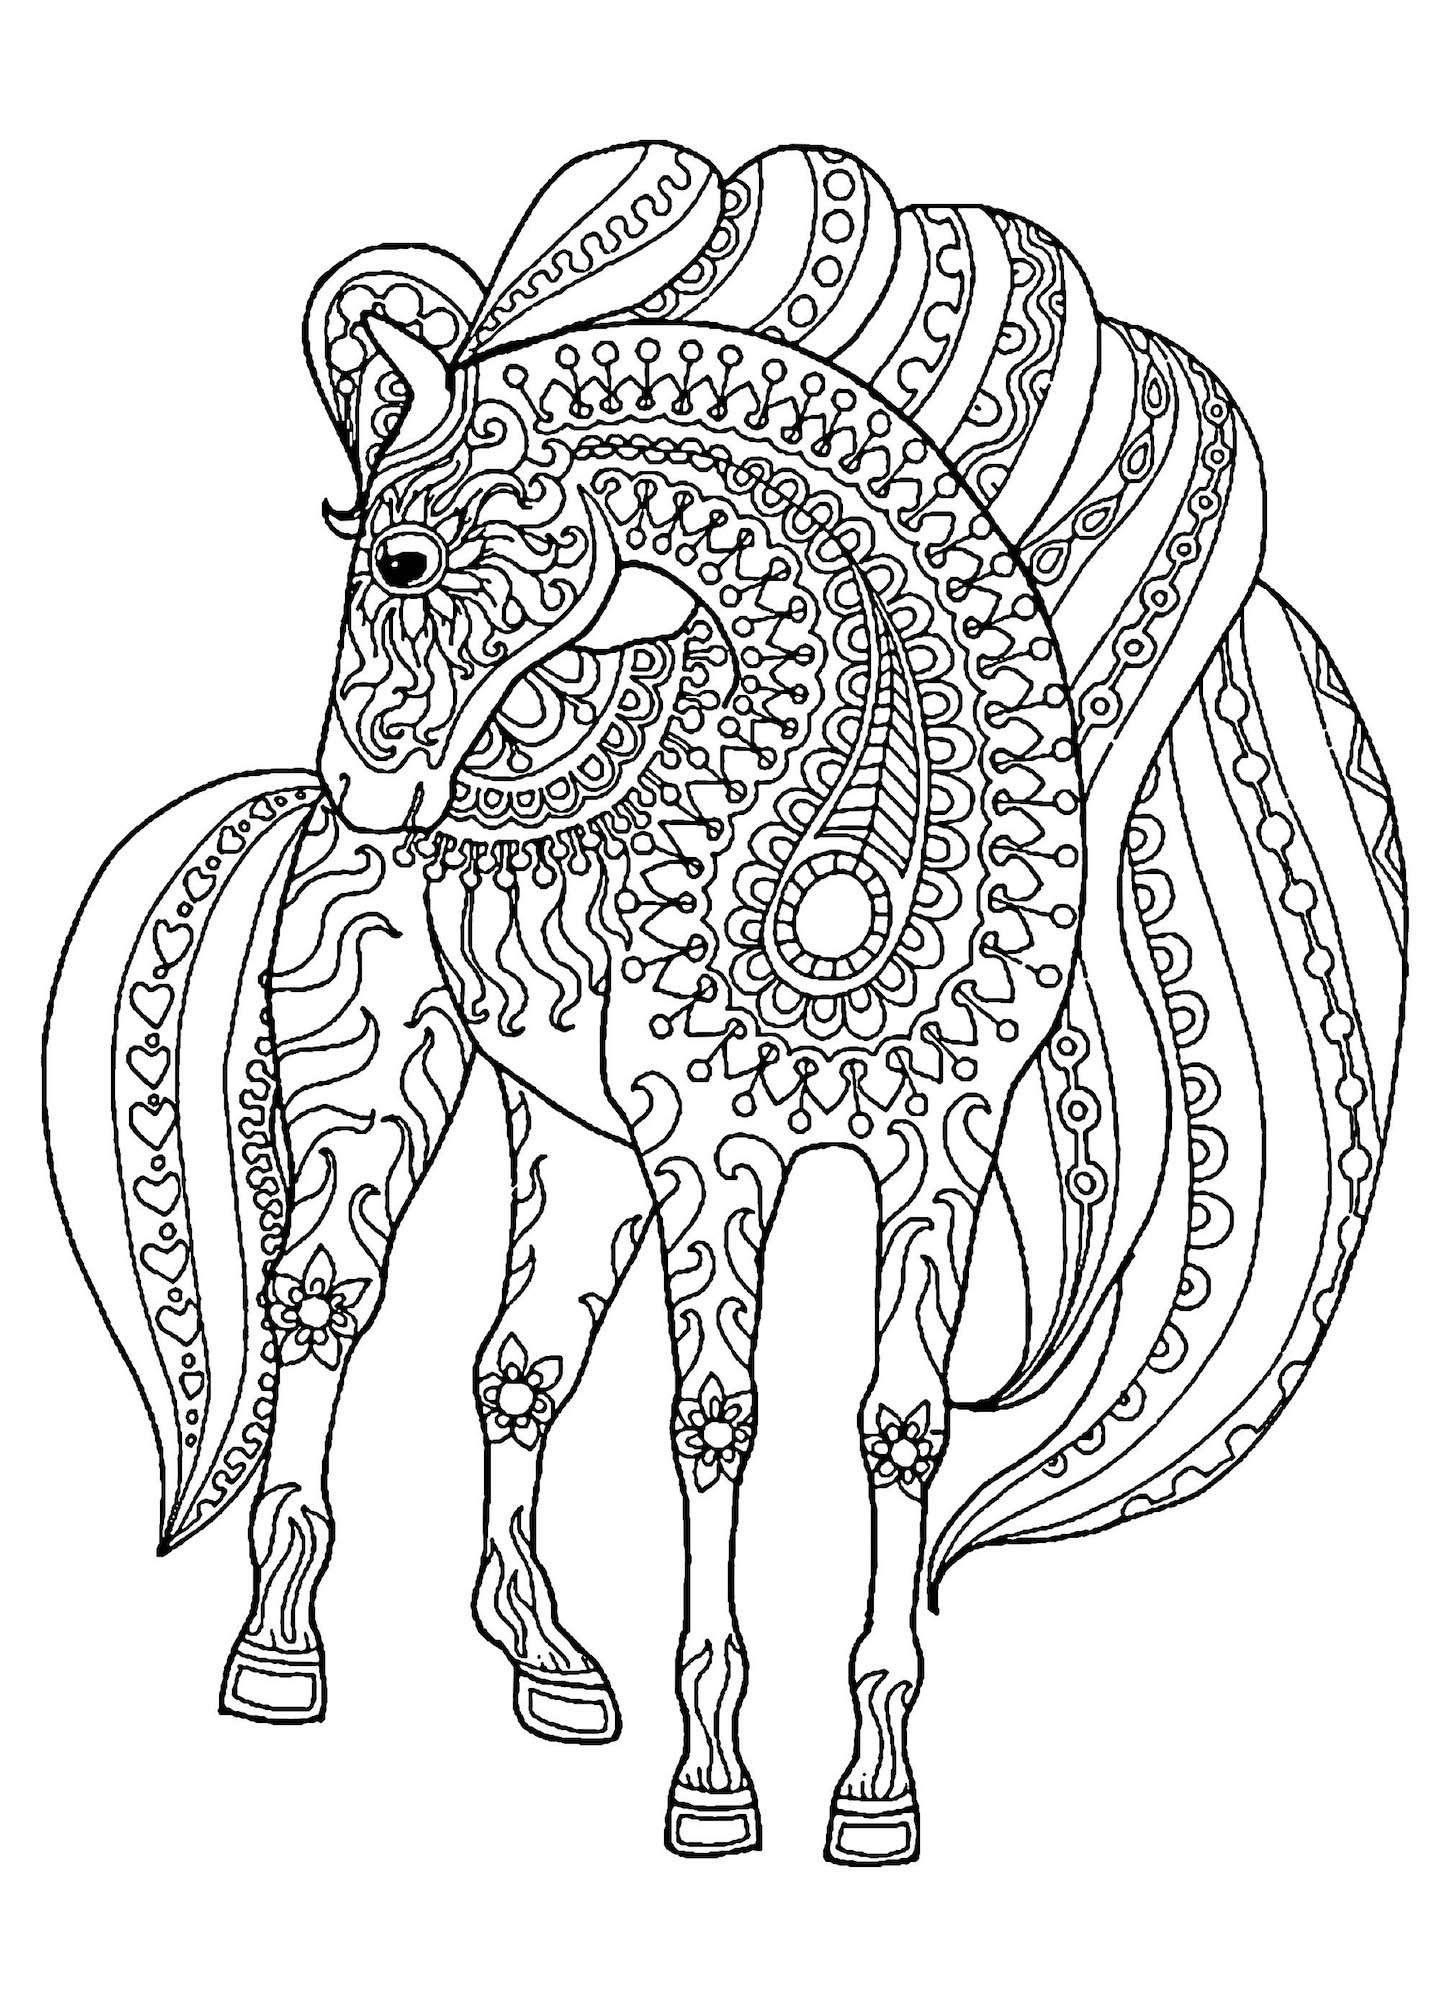 horse coloring image draft horse coloring pages at getcoloringscom free image horse coloring